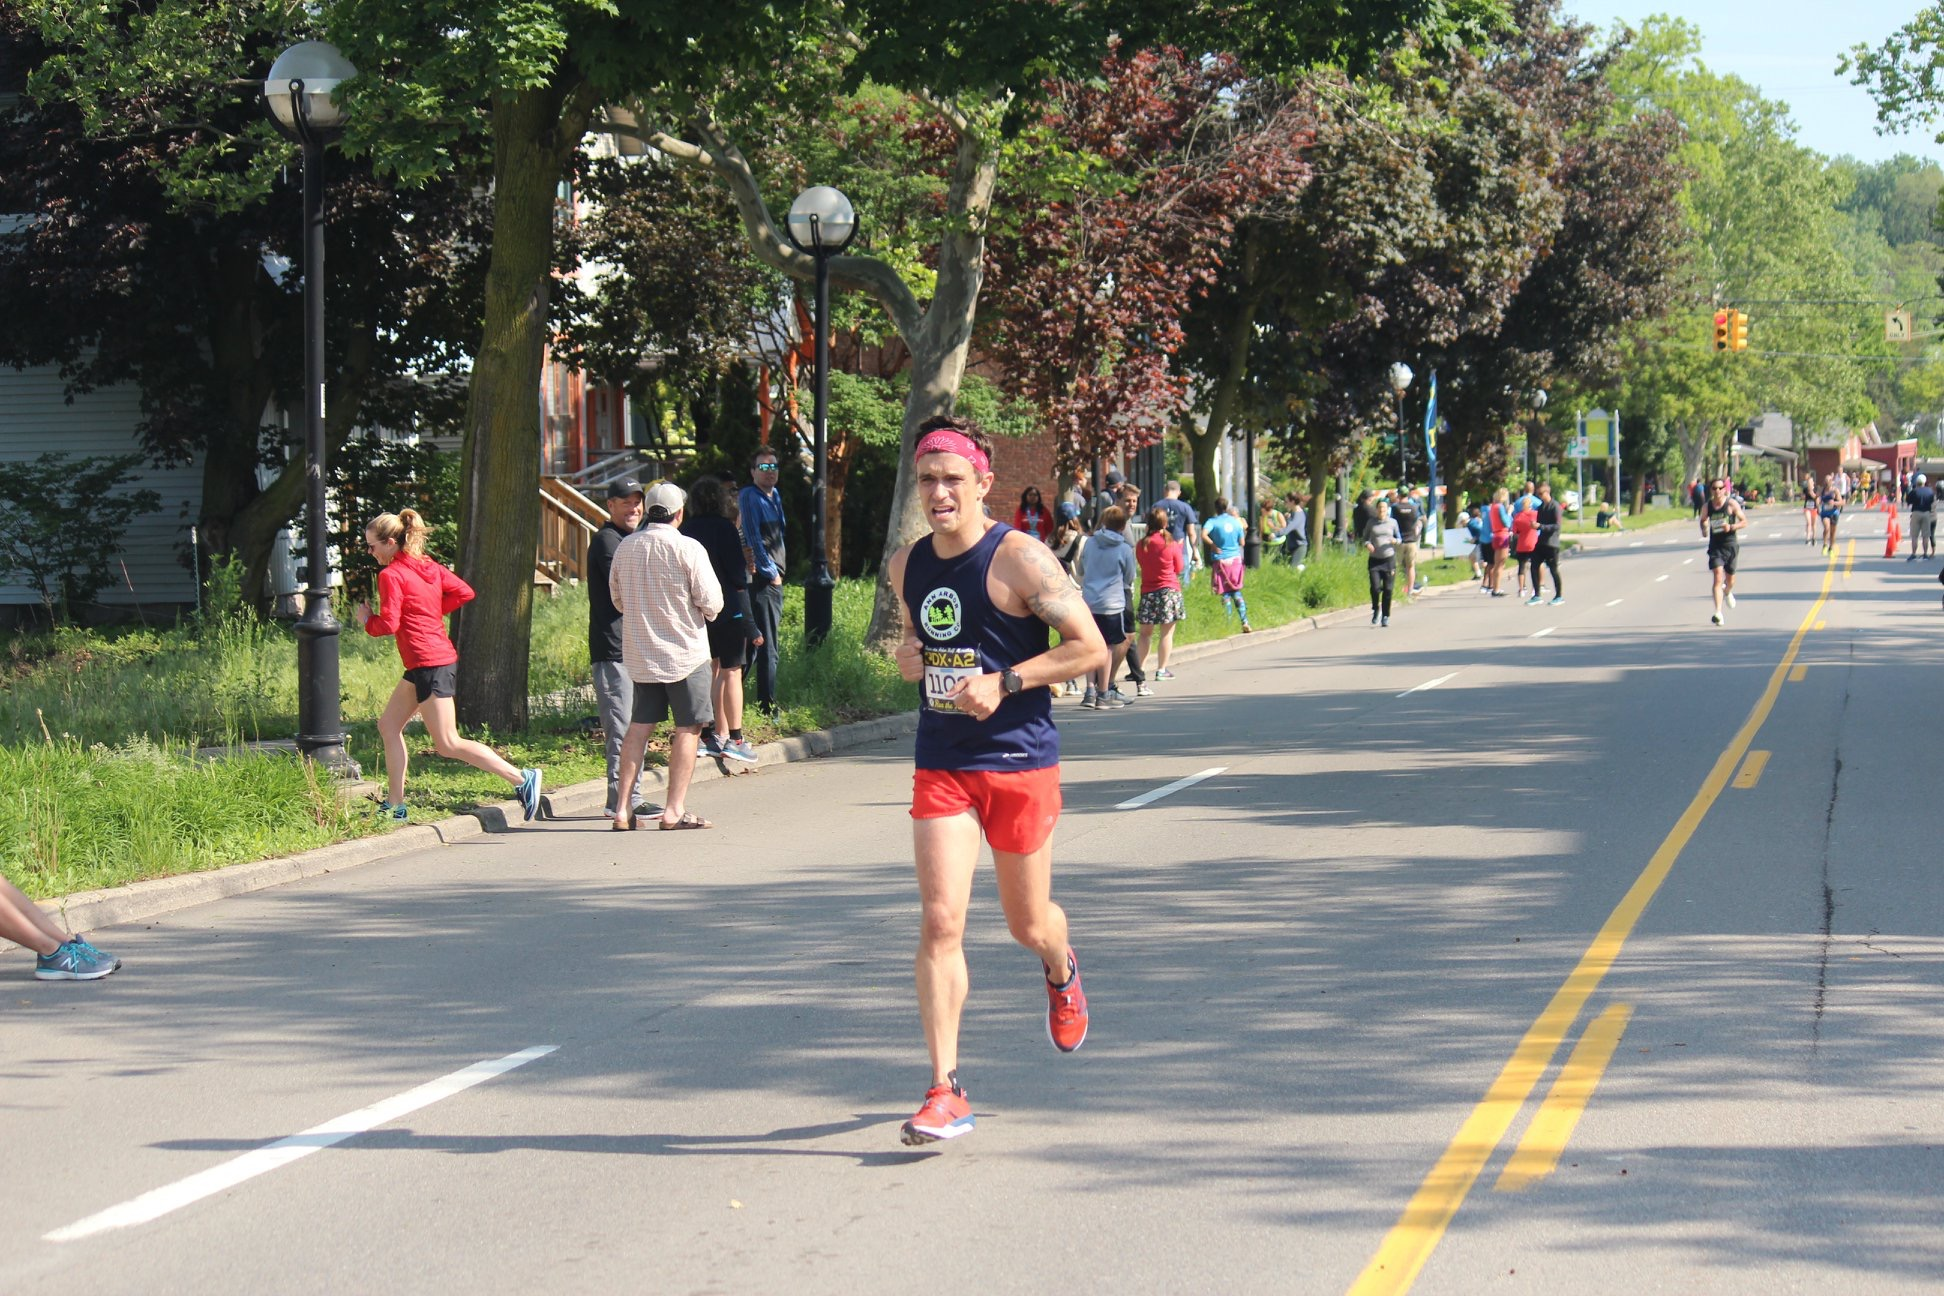 Brian's address may say Ferndale, but this dude has Ann Arbor runner DNA.